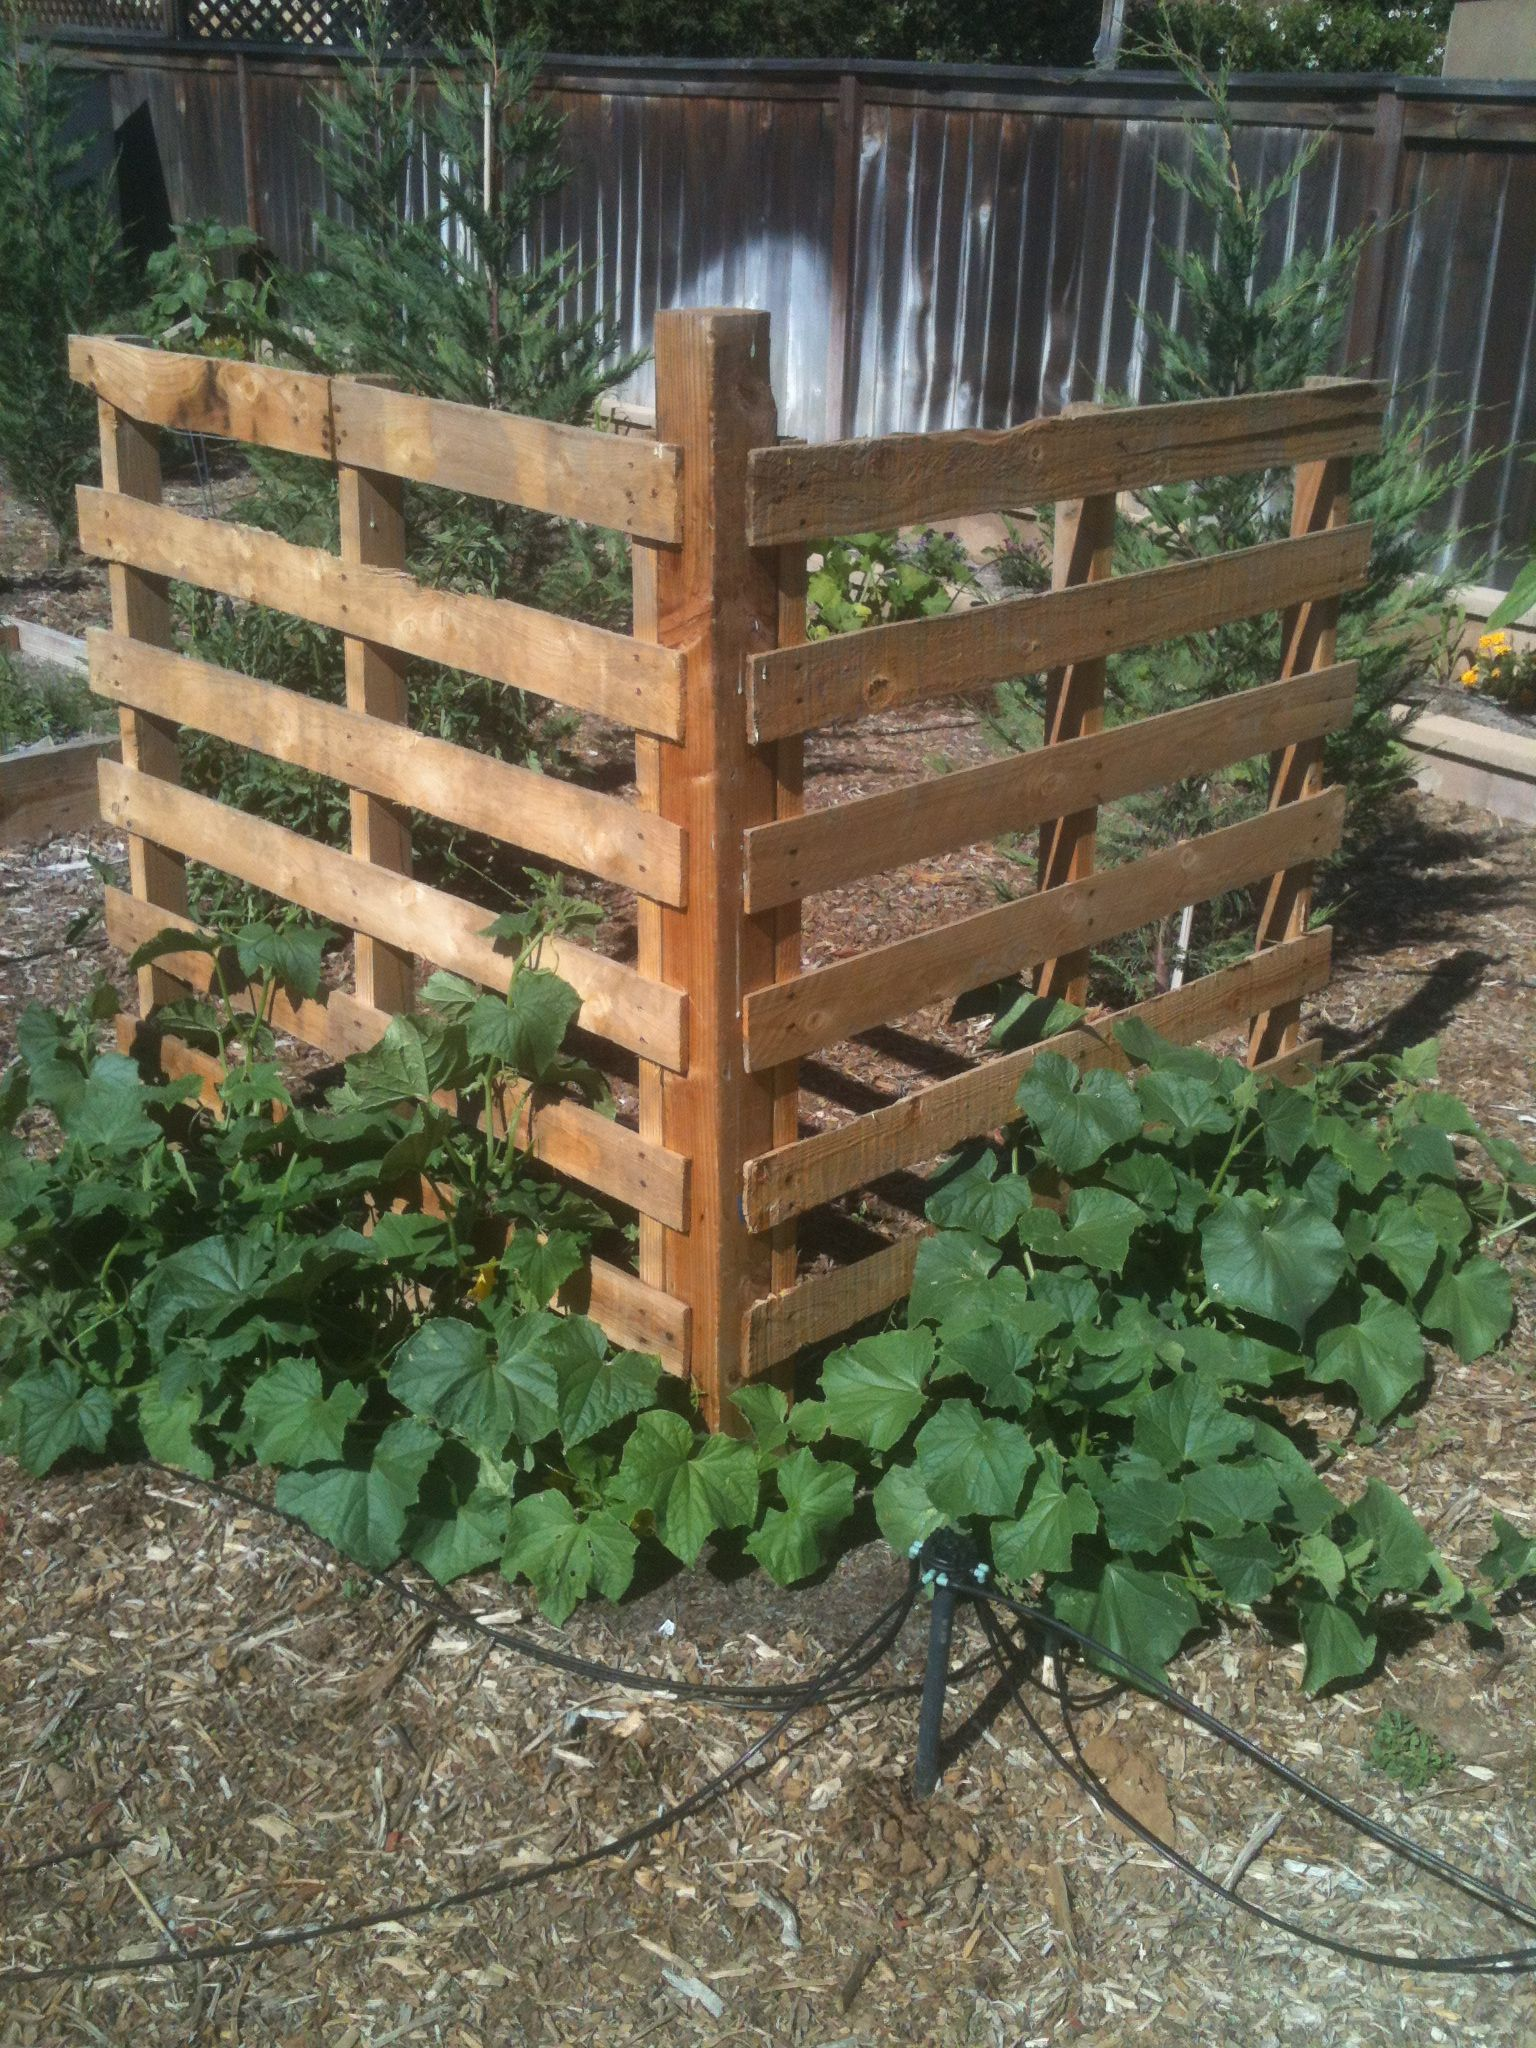 Cucumber Trellis Ideas Part - 40: Cucumber Trellis From Pallets. I Wonder If This Would Work For Tomatoes.